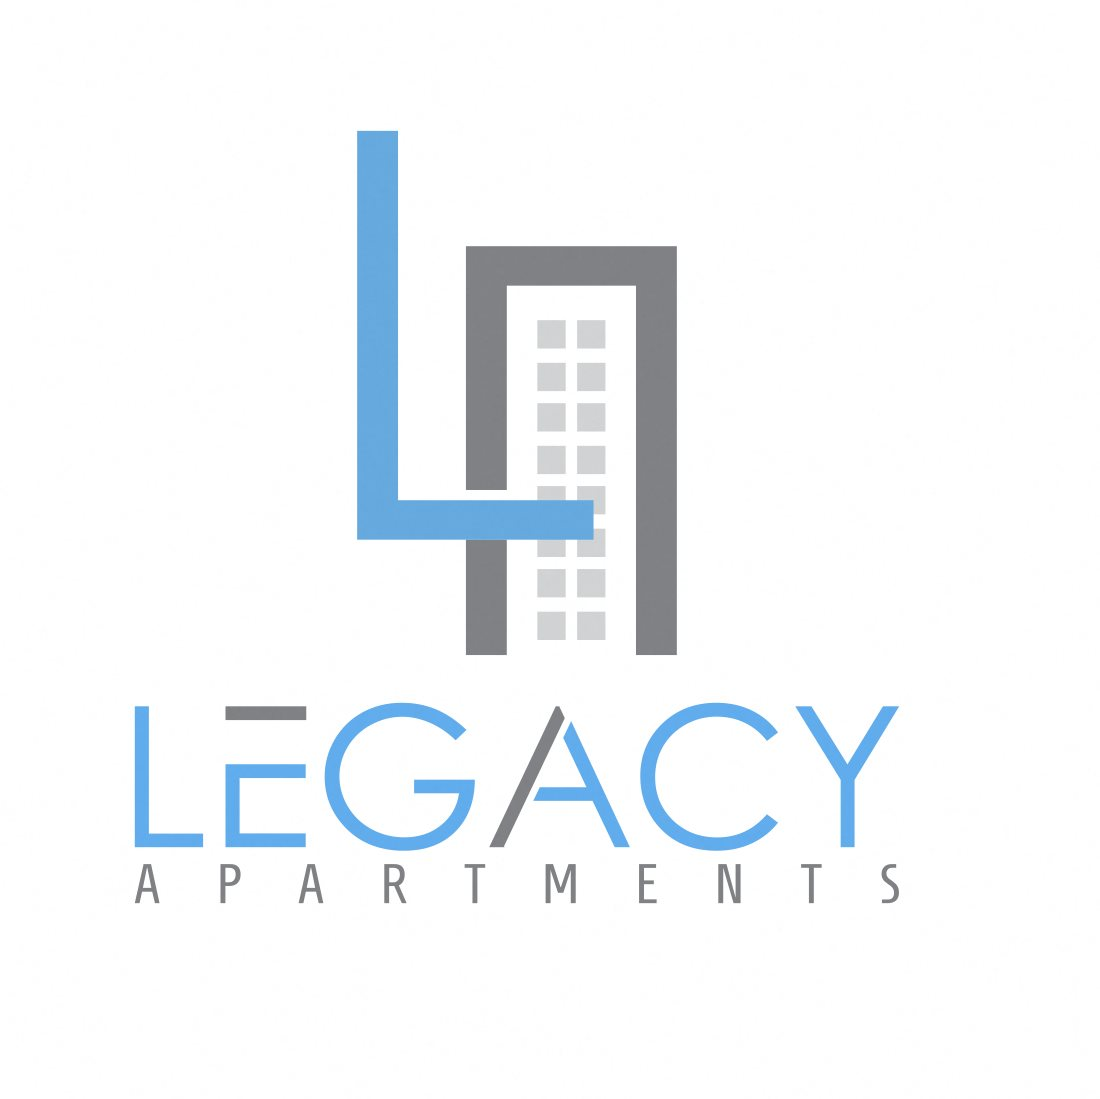 Legacy Apartment Homes  - Northridge - Luxury Rental Apartments near CSUN